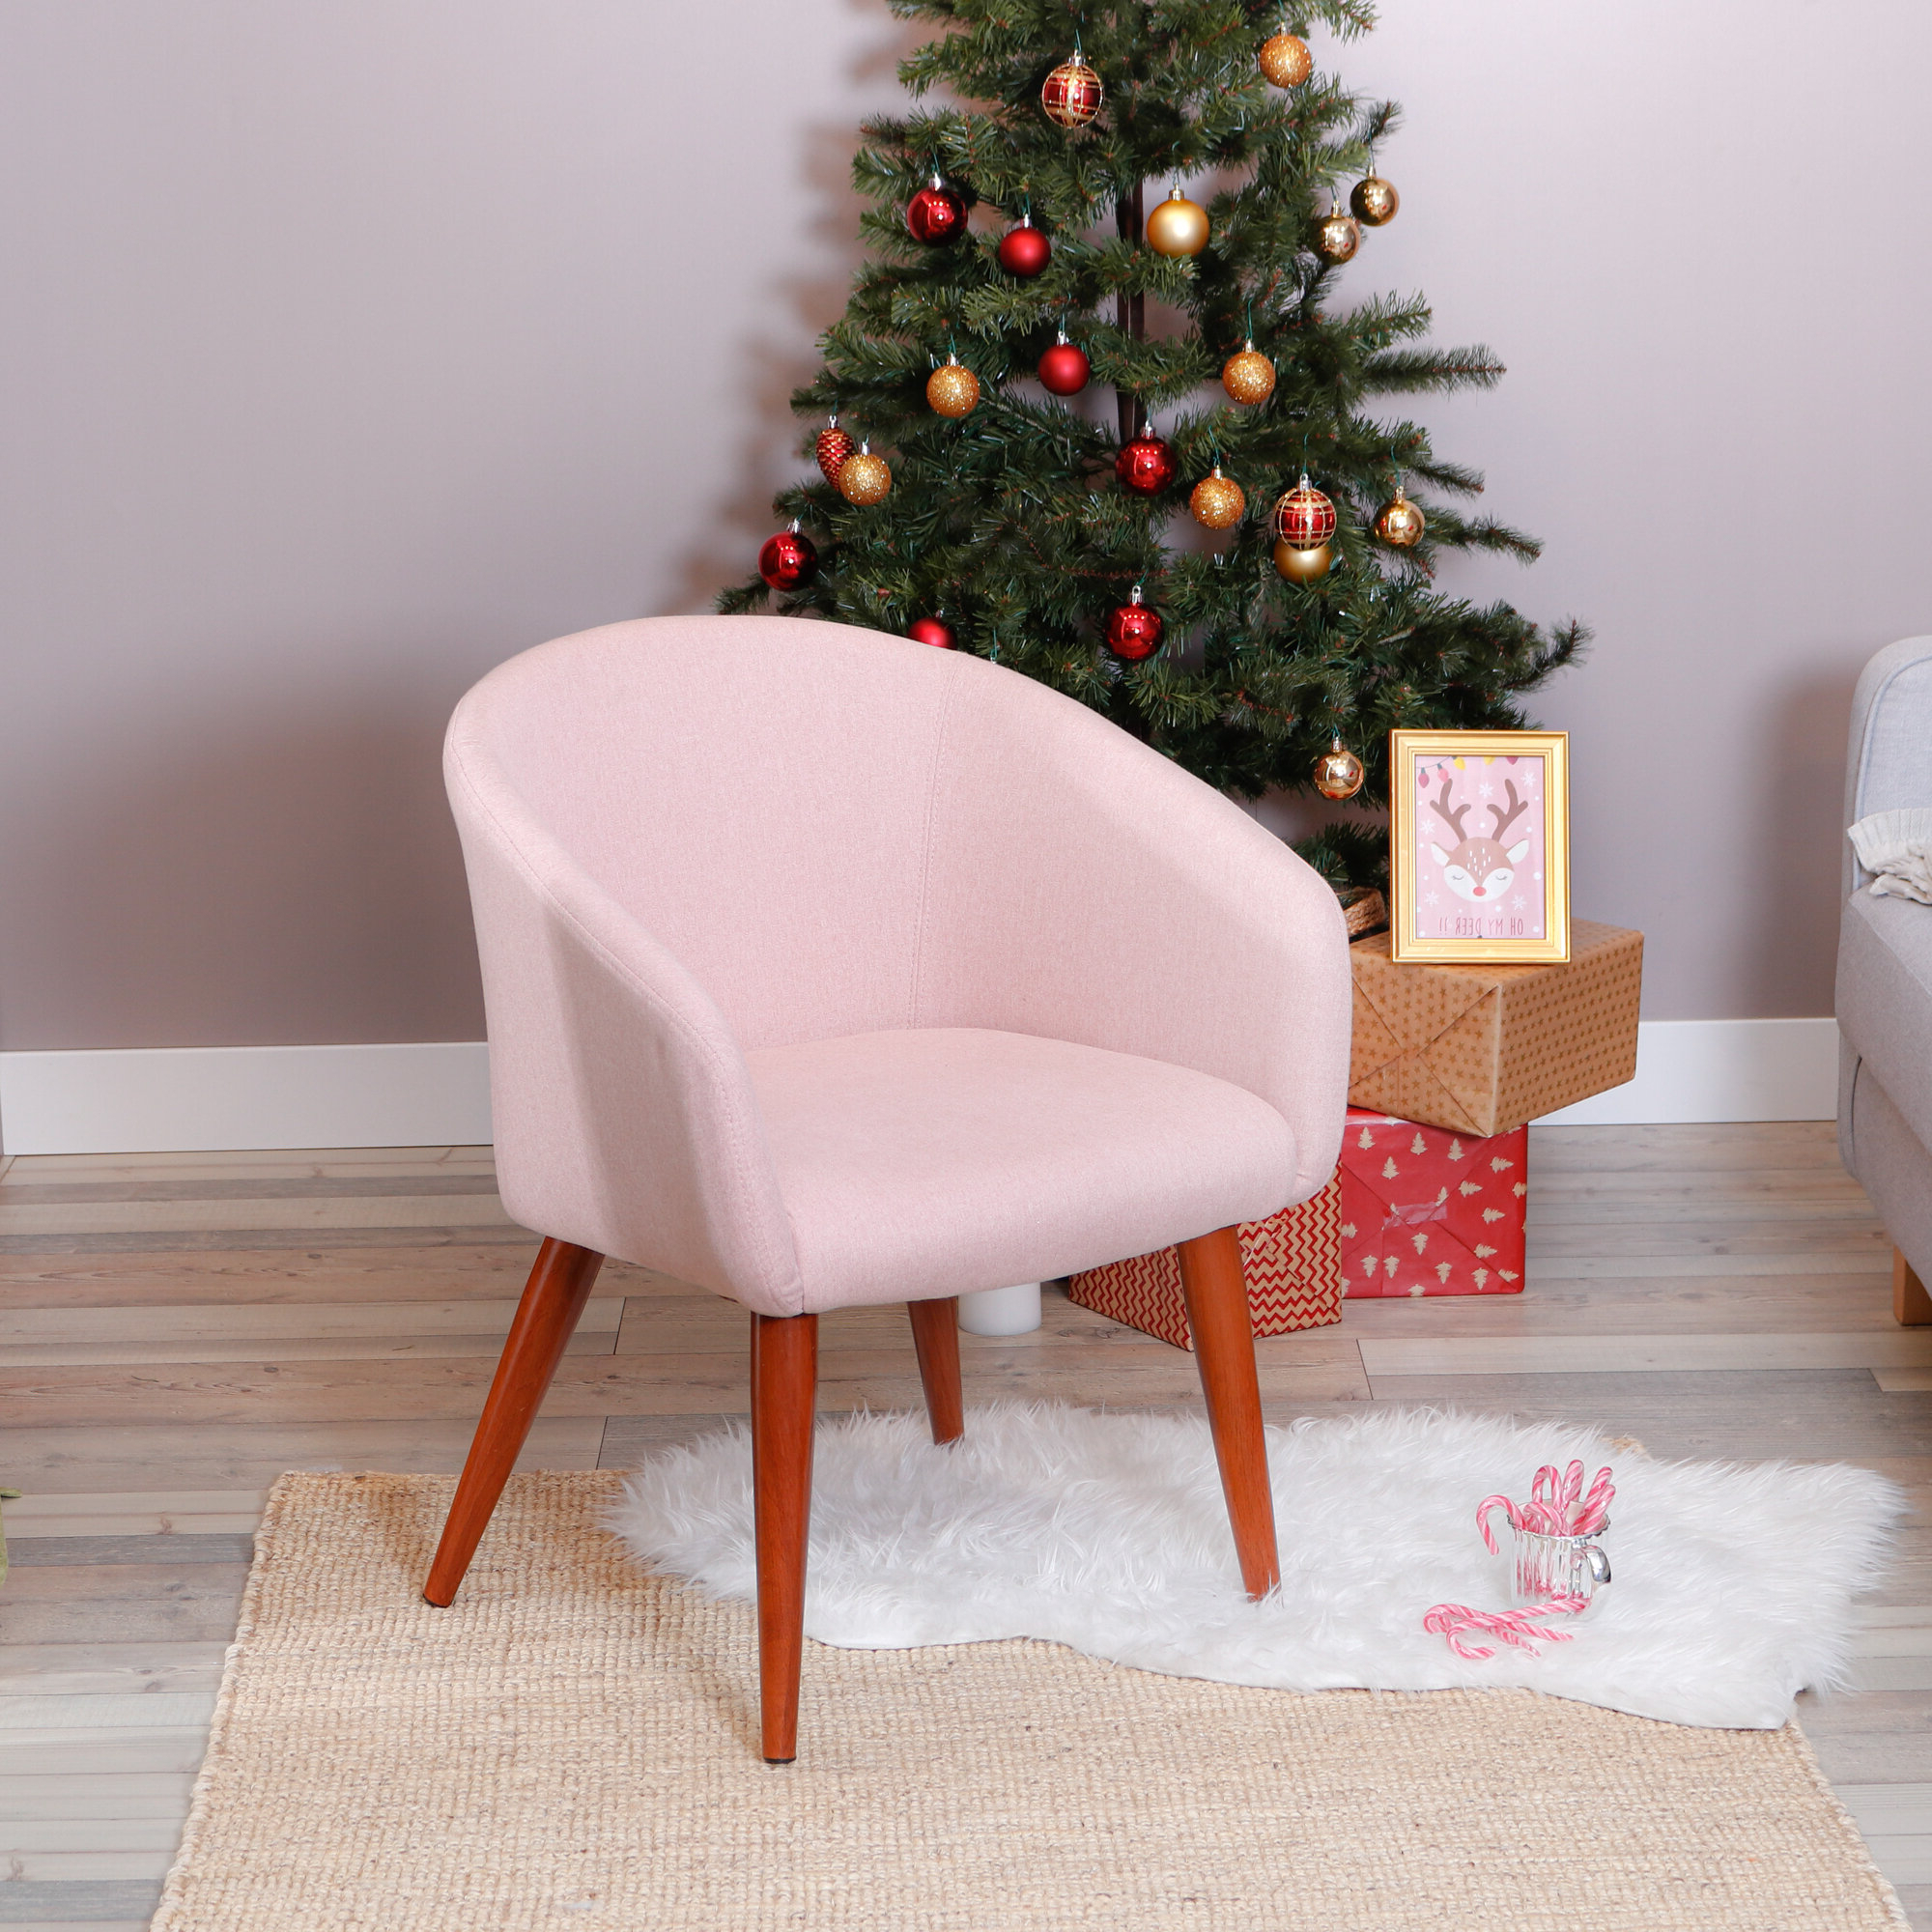 Boyden Armchairs Throughout Well Known Boyden Armchair (View 4 of 20)